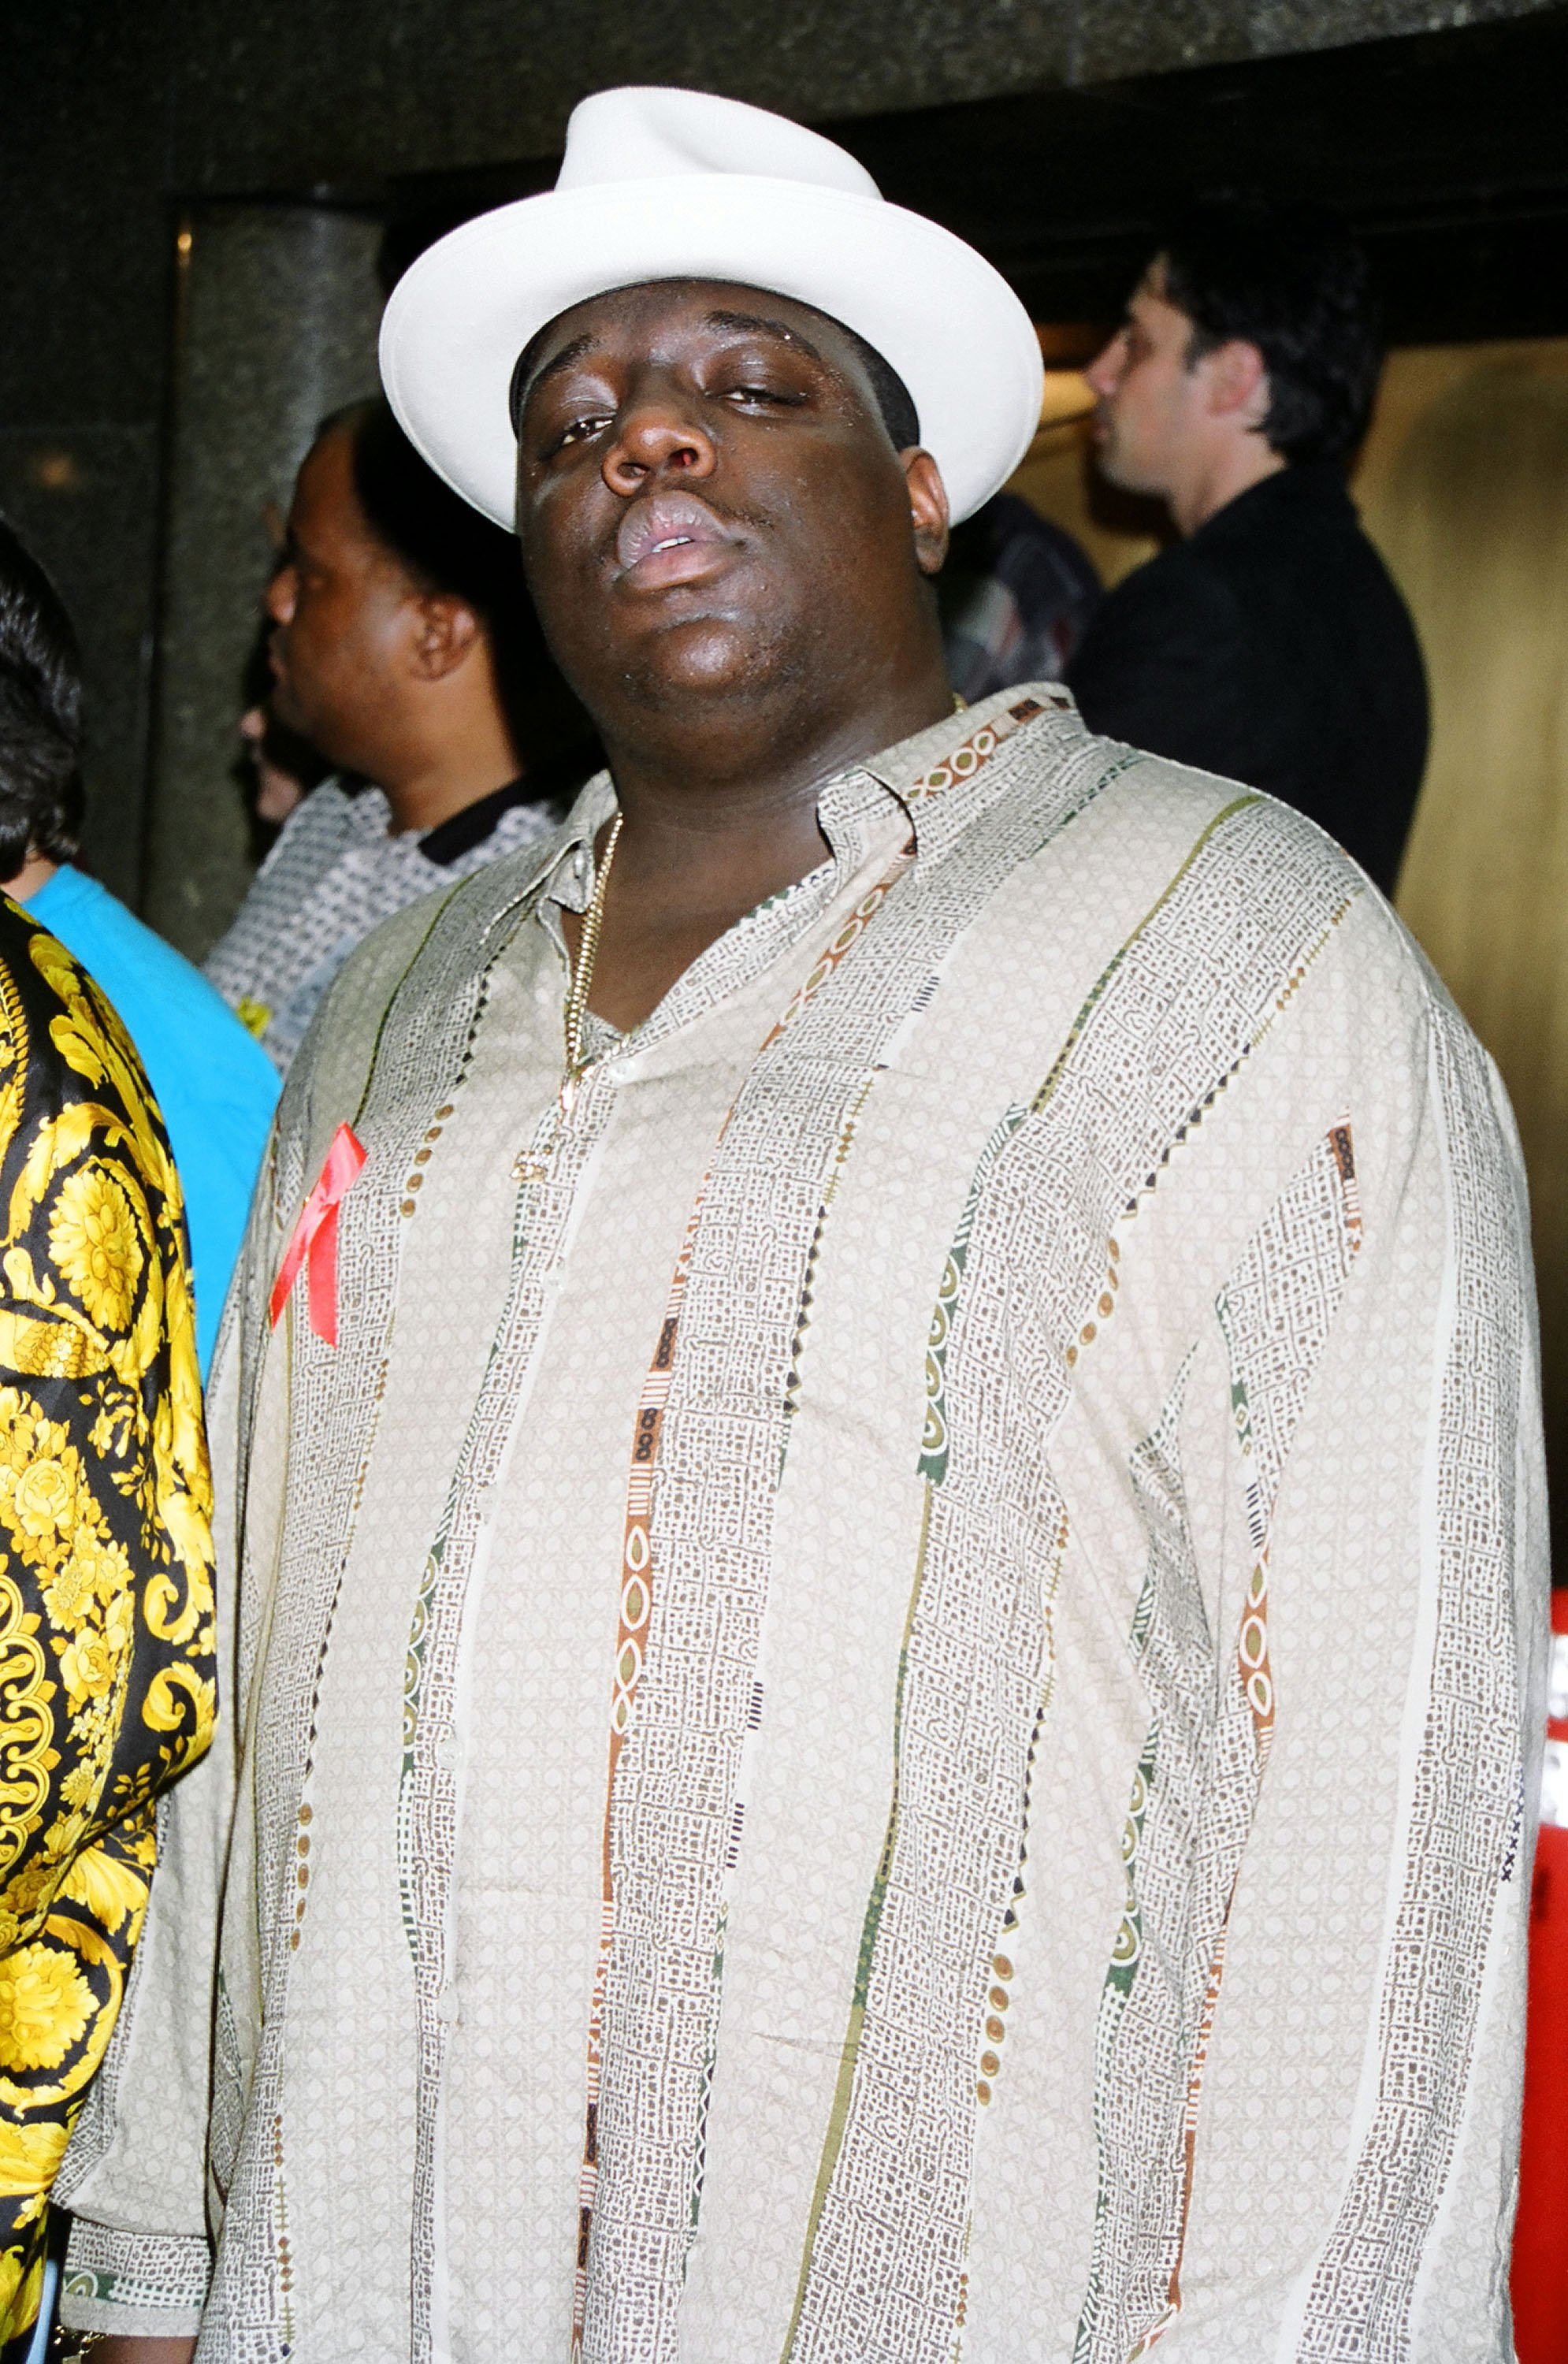 Notorius B.I.G. at the 1995 MTV Video Music Awards Show on November 7, 1995   Photo: Getty Images